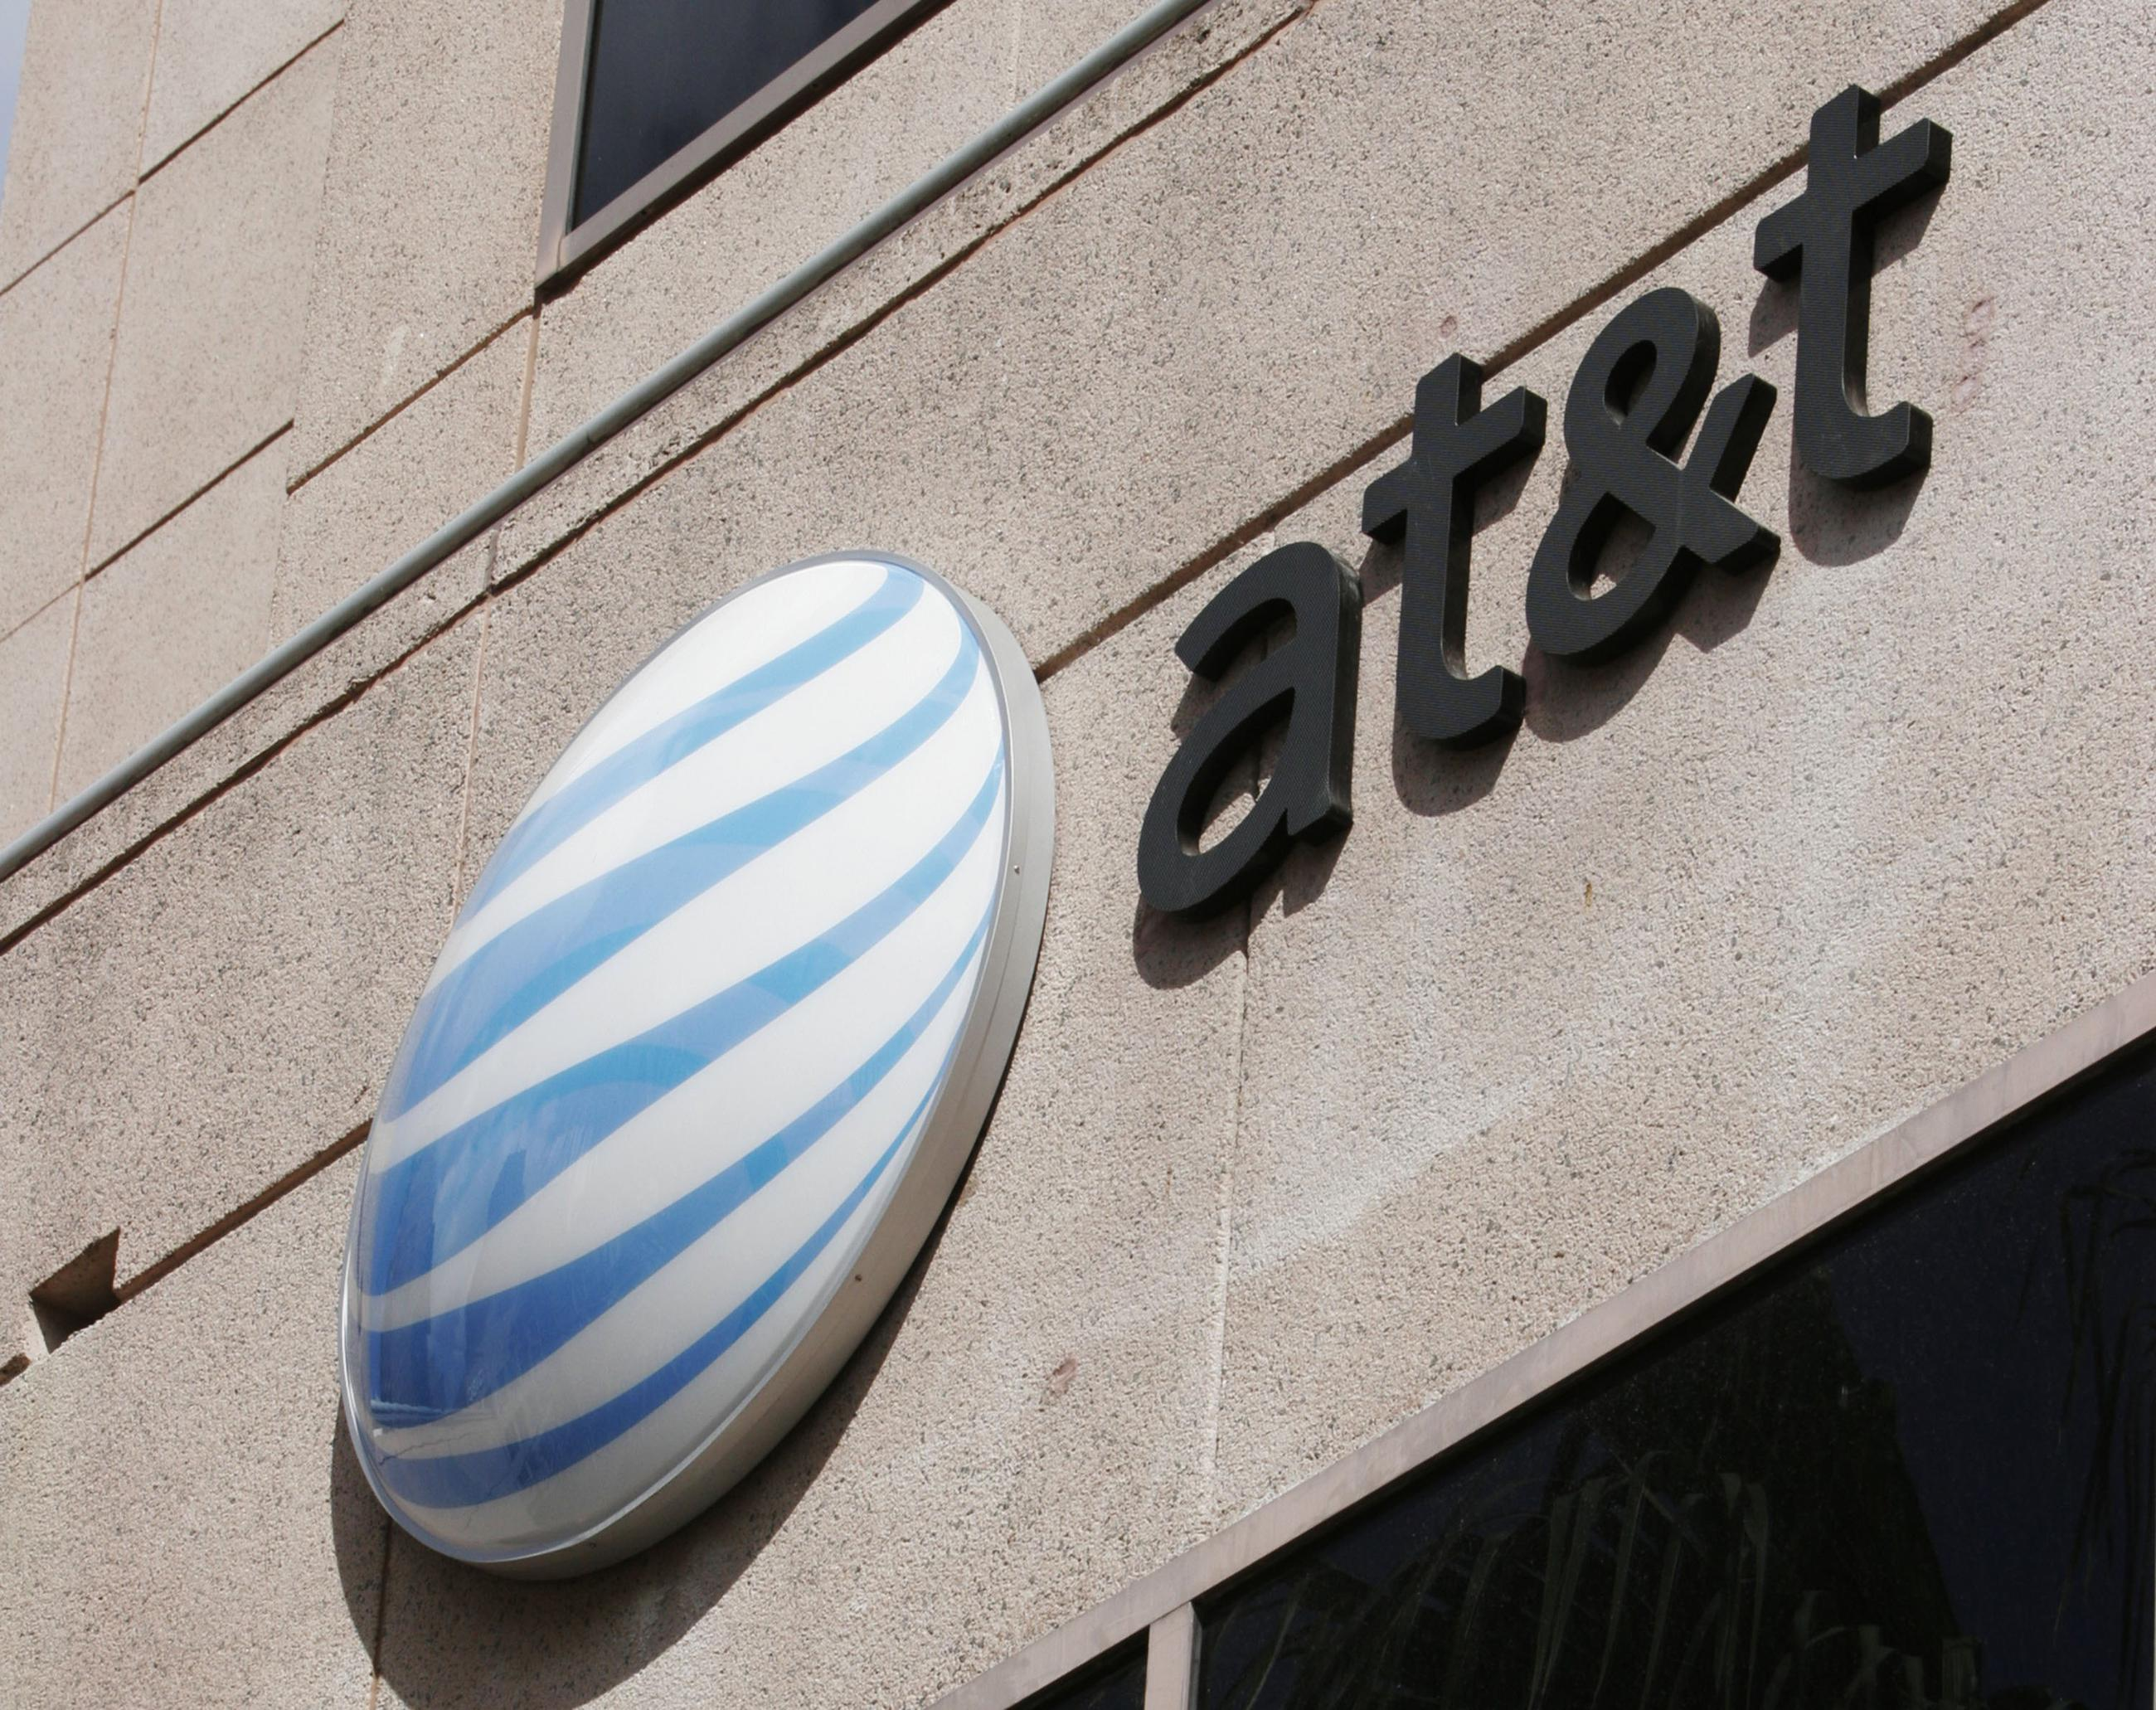 U.S. Spied on More Than 300,000 AT&T Customers in 2013